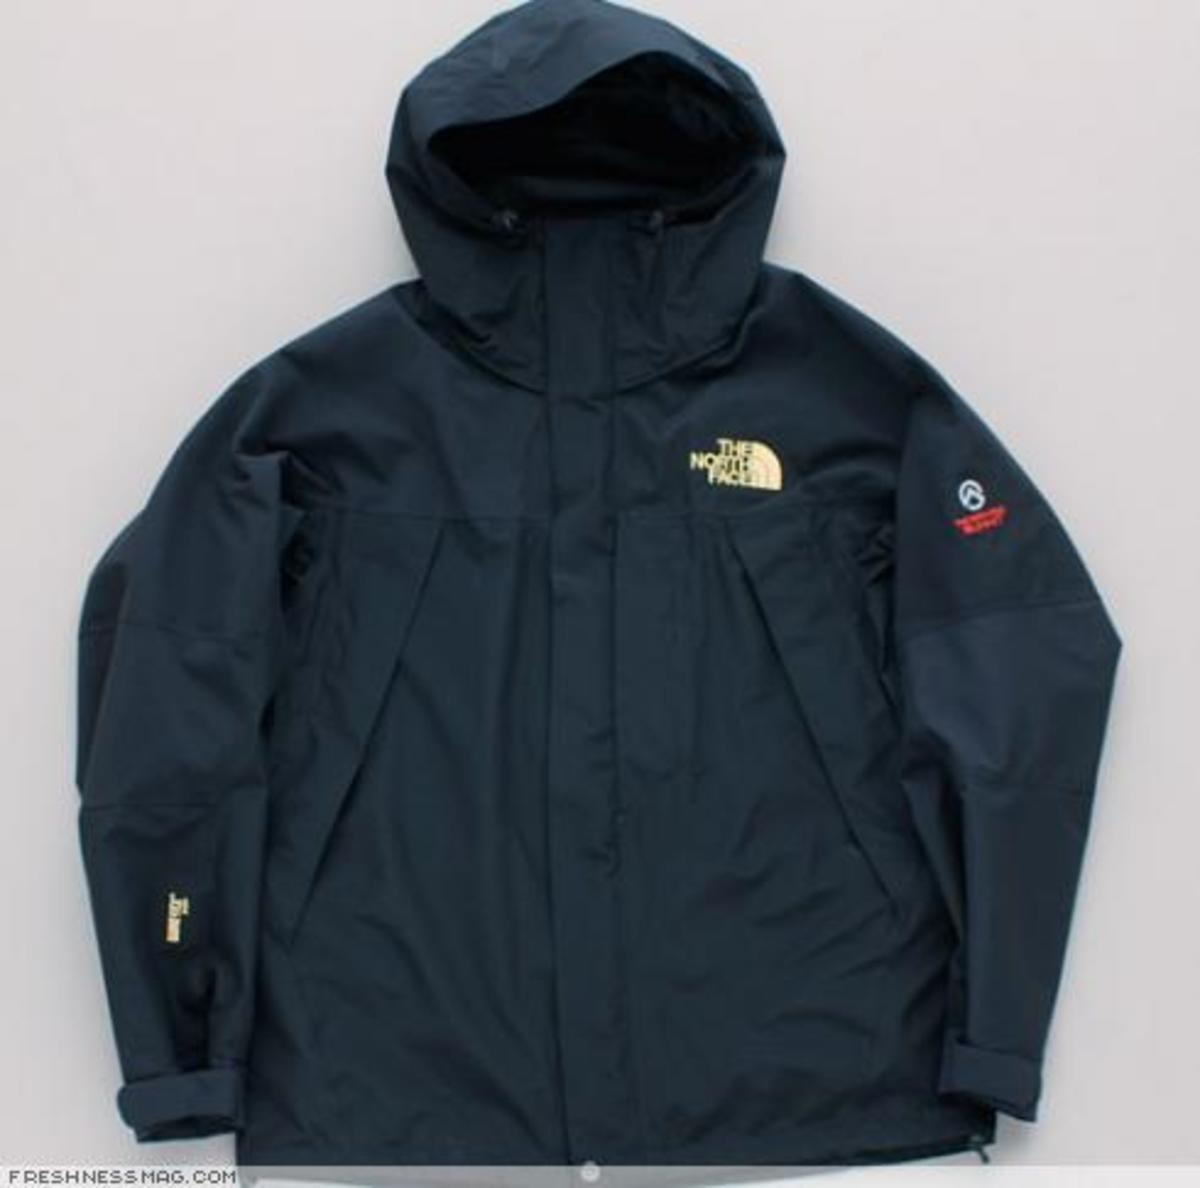 SWAGGER x The North Face - 2